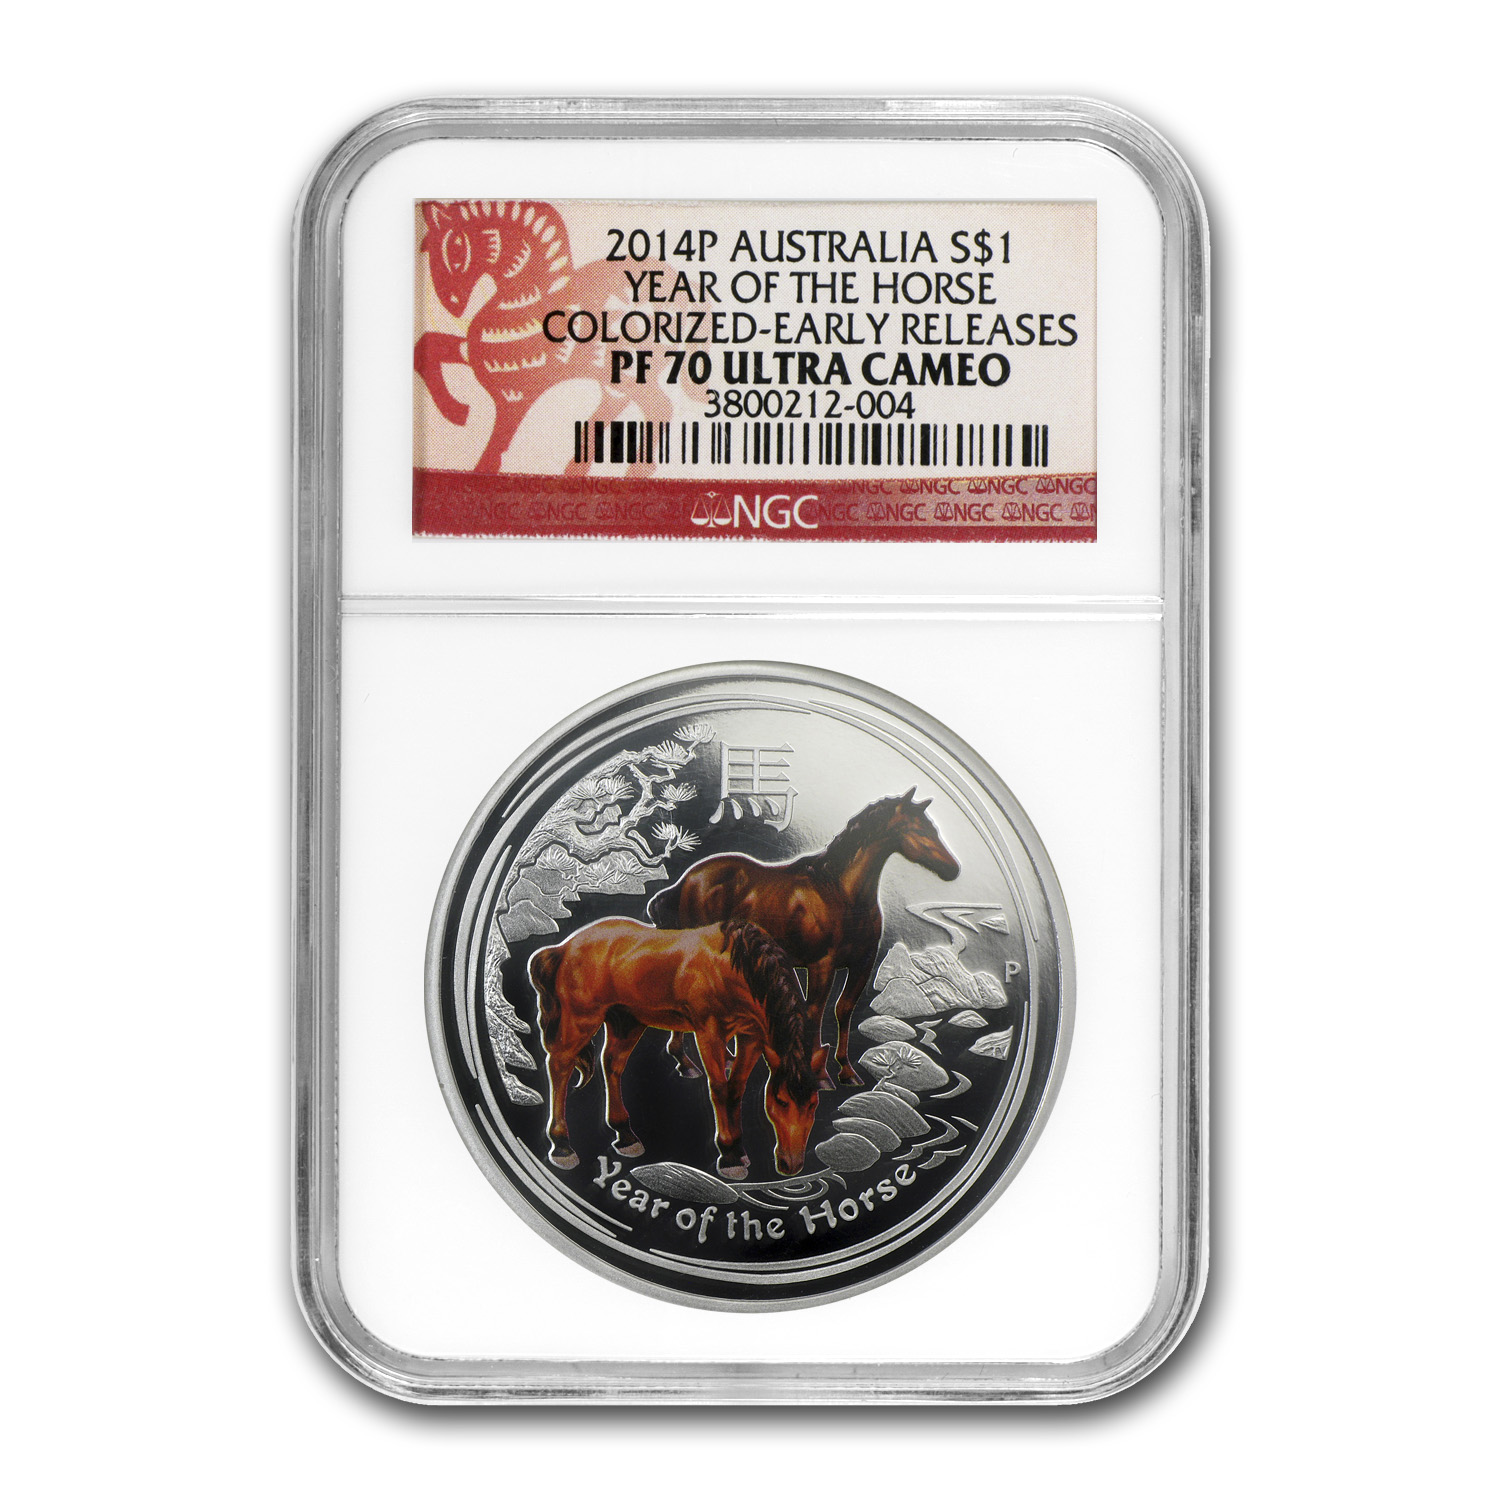 2014 1 oz Silver Year of the Horse Proof Colorized Coin PF-70 NGC